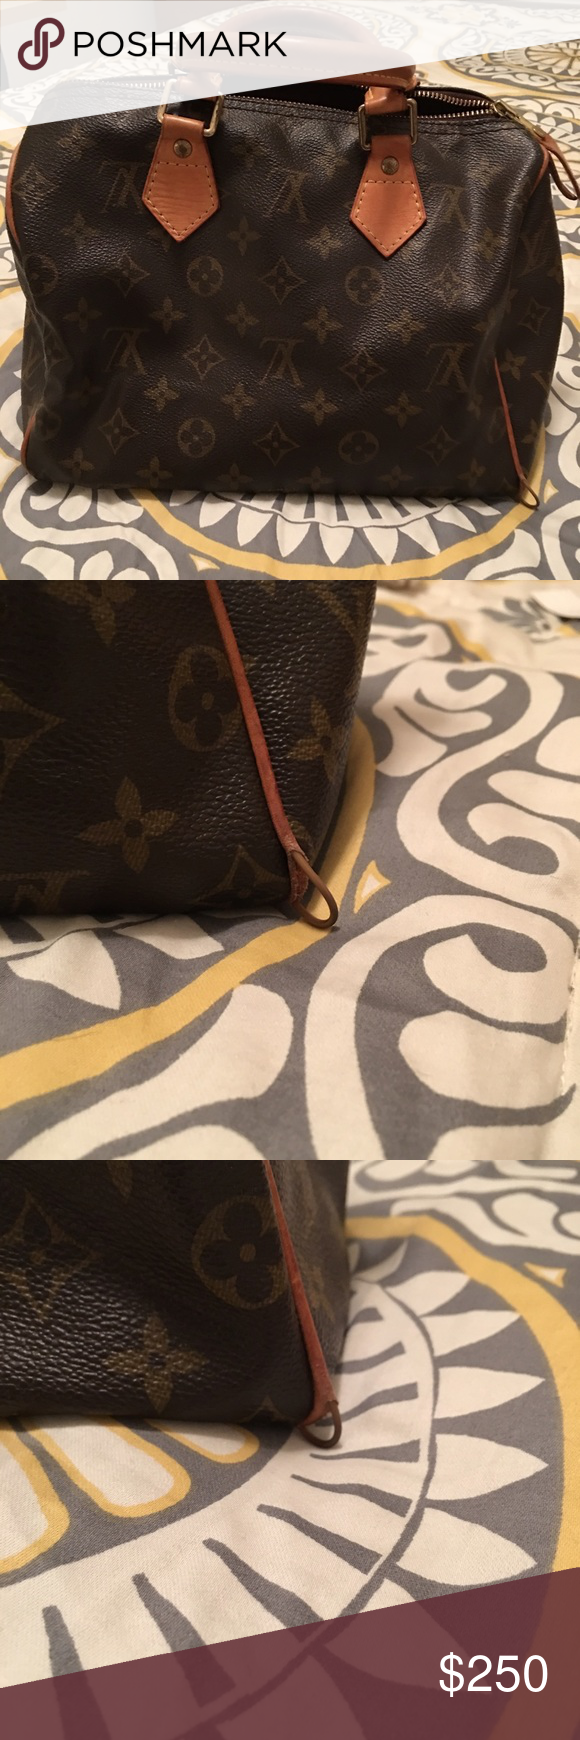 Louis Vuitton Speedy 25 Louis Vuitton Speedy 25. Dust bag not included. Piping on two corners exposed. The leather has browned some and shows wear, but it isn't dry/cracking. Canvas is in overall good condition. Guaranteed authentic. Louis Vuitton Bags